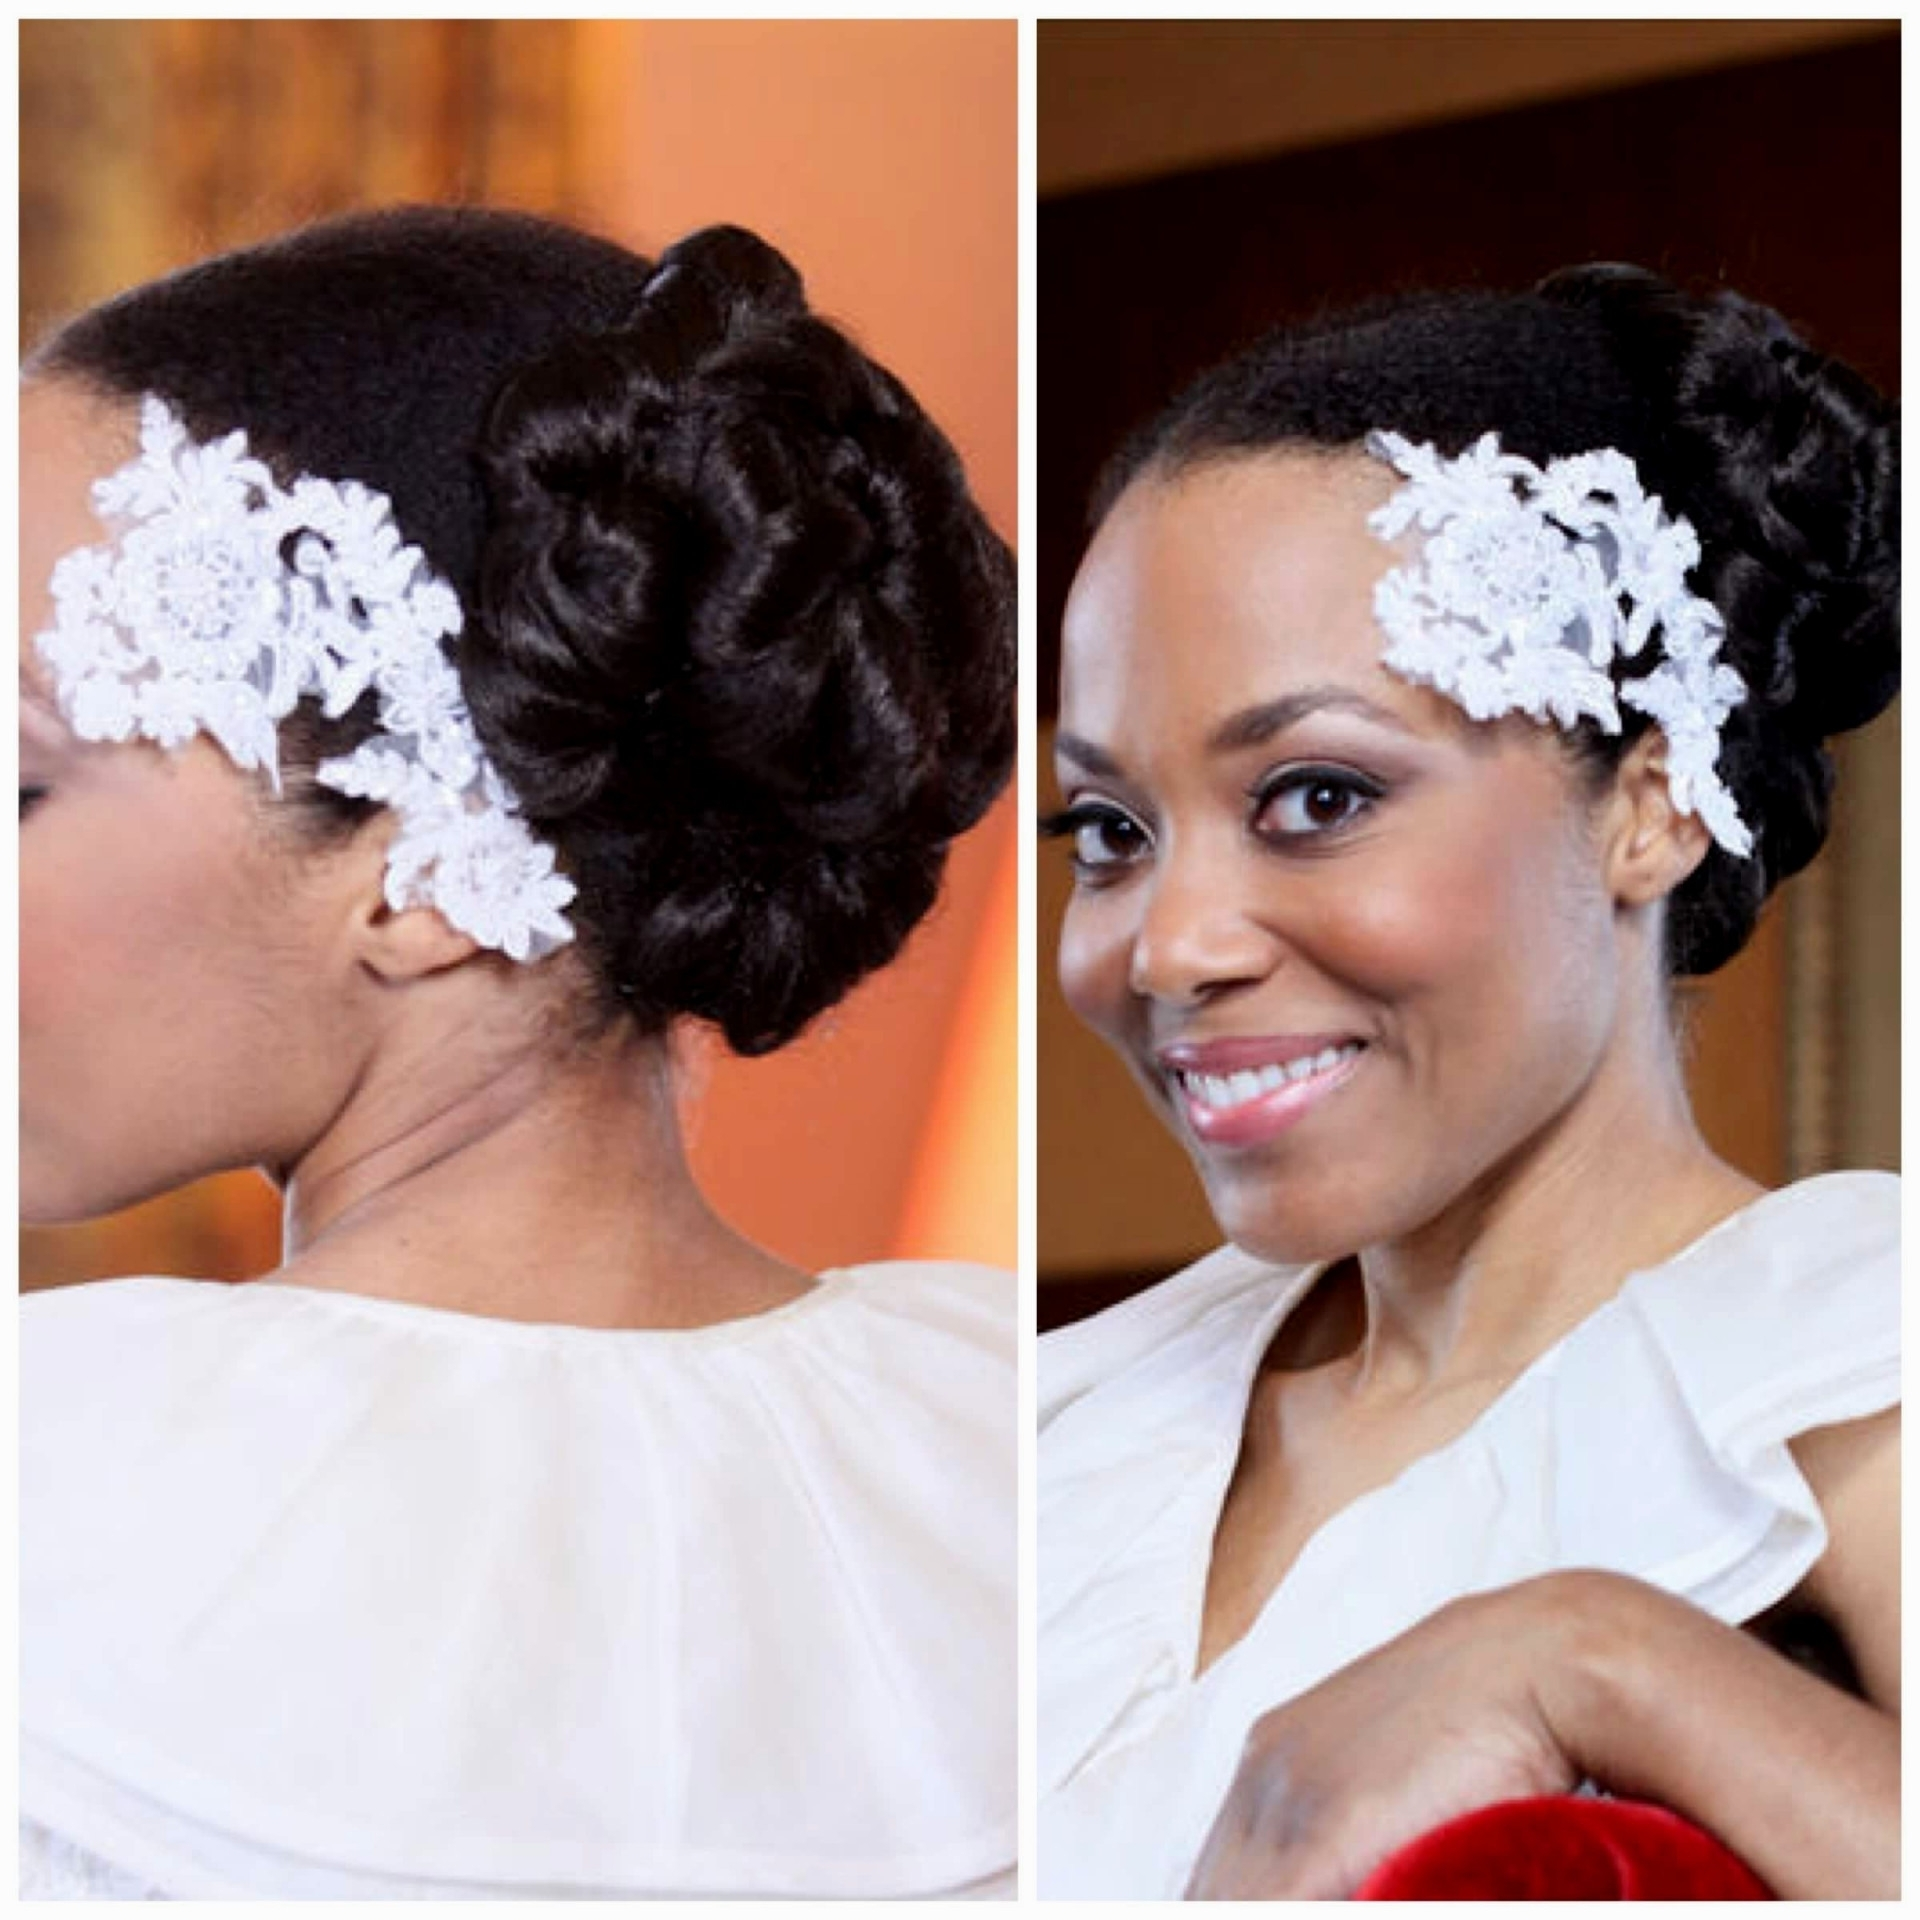 Wedding Hairstyles For African American Bridesmaids With Short Best Pertaining To Well Known Wedding Hairstyles For African American Bridesmaids (View 14 of 15)